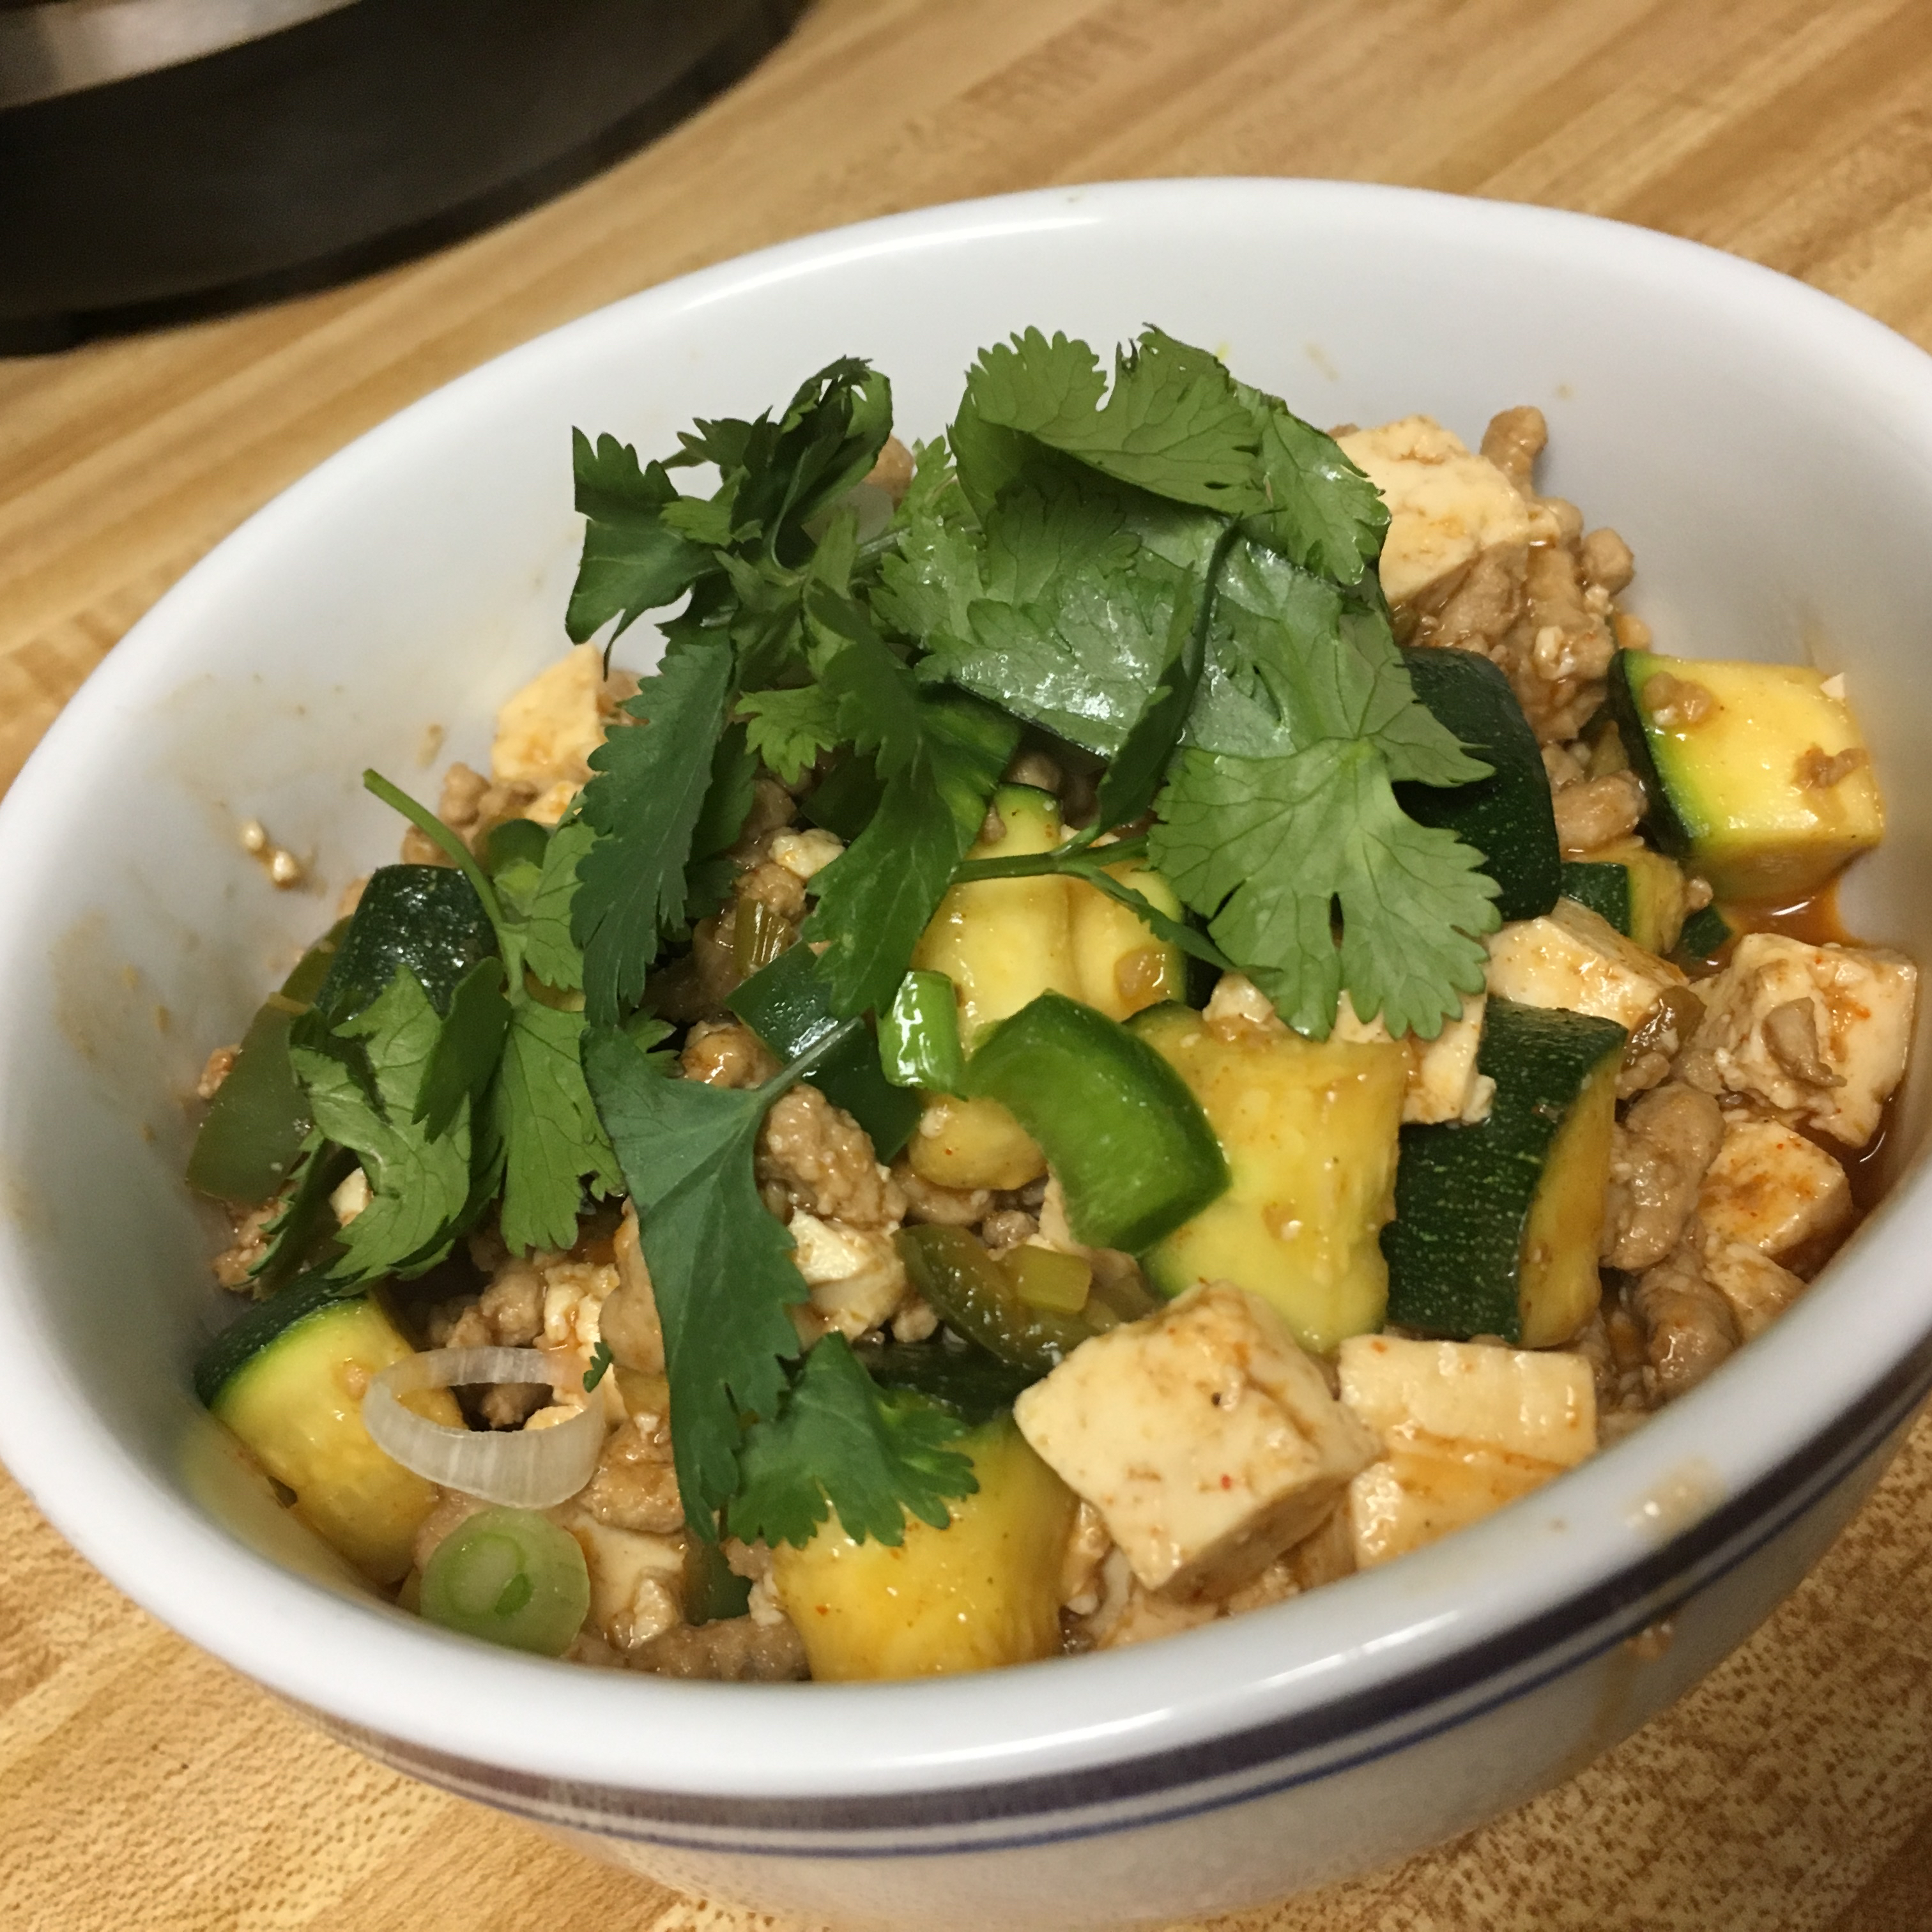 Spicy Pork and Vegetable Tofu Earthdog